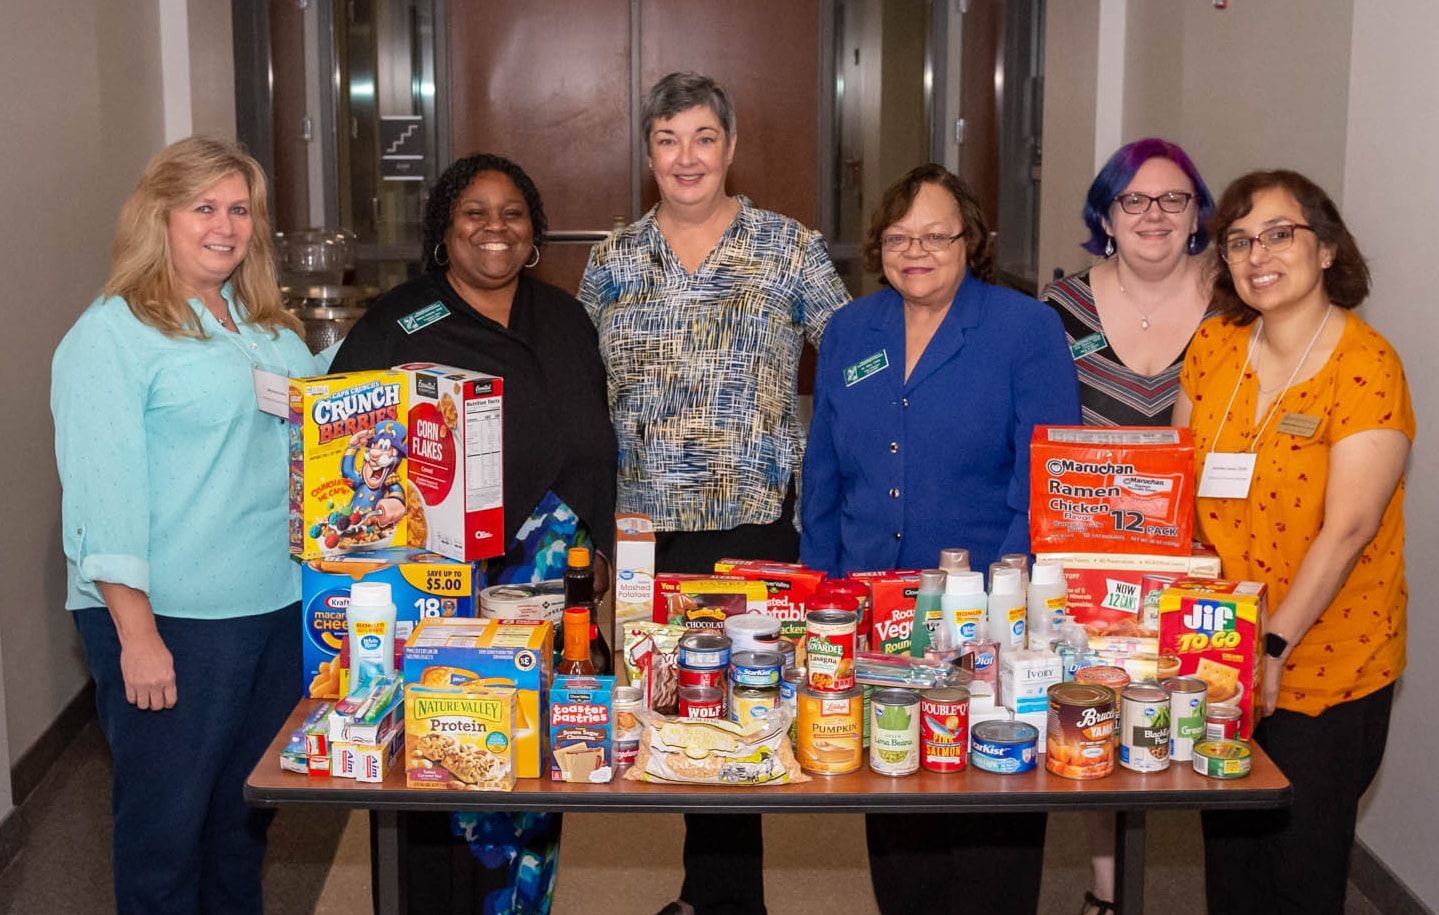 Dr. Tamara Hurst, center, a faculty member in The University of Southern Mississippi (USM) School of Social Work, accepted donations for the Eagle's Nest Pantry from members of the Mississippi Association of Educational Office Professionals (MAEOP) and the USM chapter of MAEOP, the USM Association of Office Professionals (USM AOP) on October 25th during the Mississippi Association of Educational Office Professional Development Seminar (MAEOP PDS).